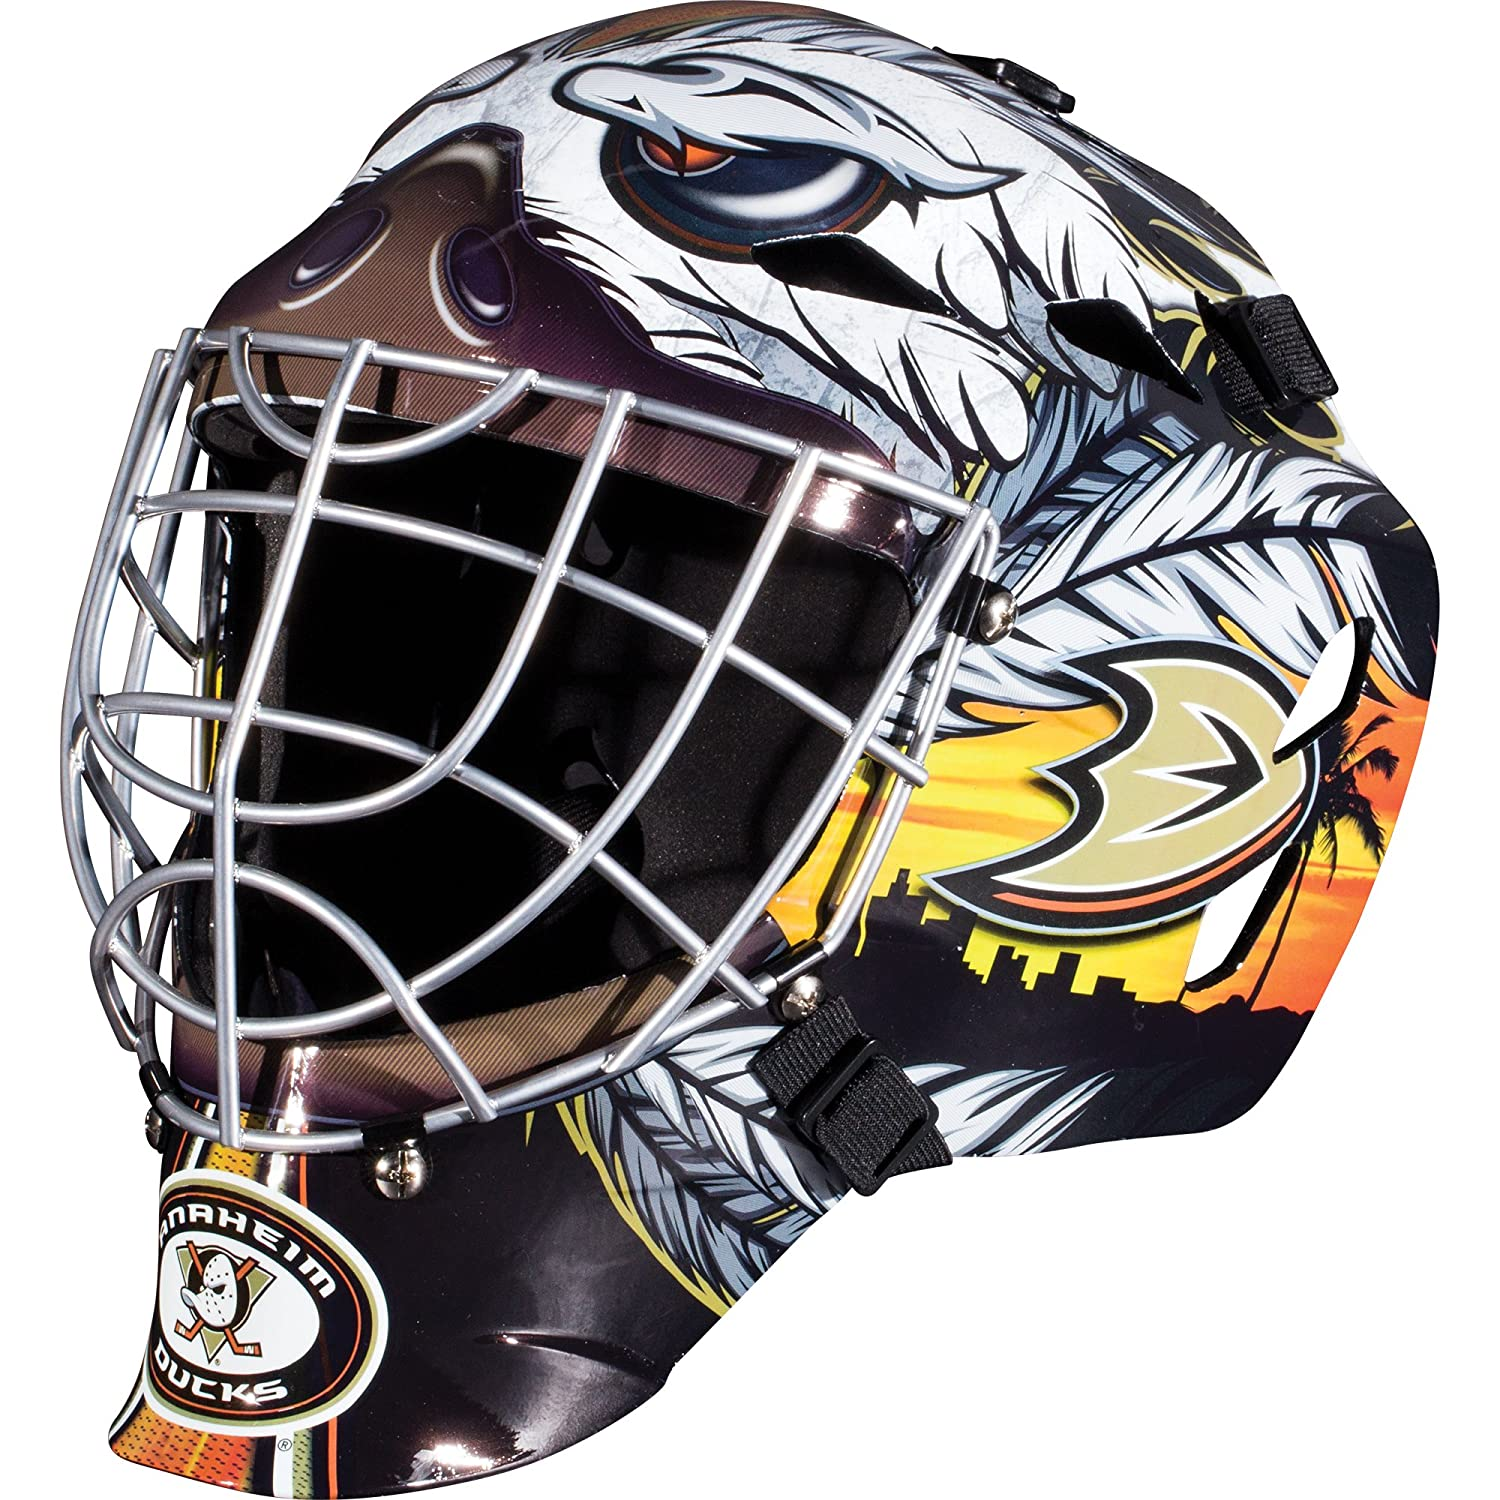 Franklin Sports GFM 1500 NHL Team Goalie Face Mask — Street Hockey Mask Modeled After U.S. and Canadian Hockey Teams